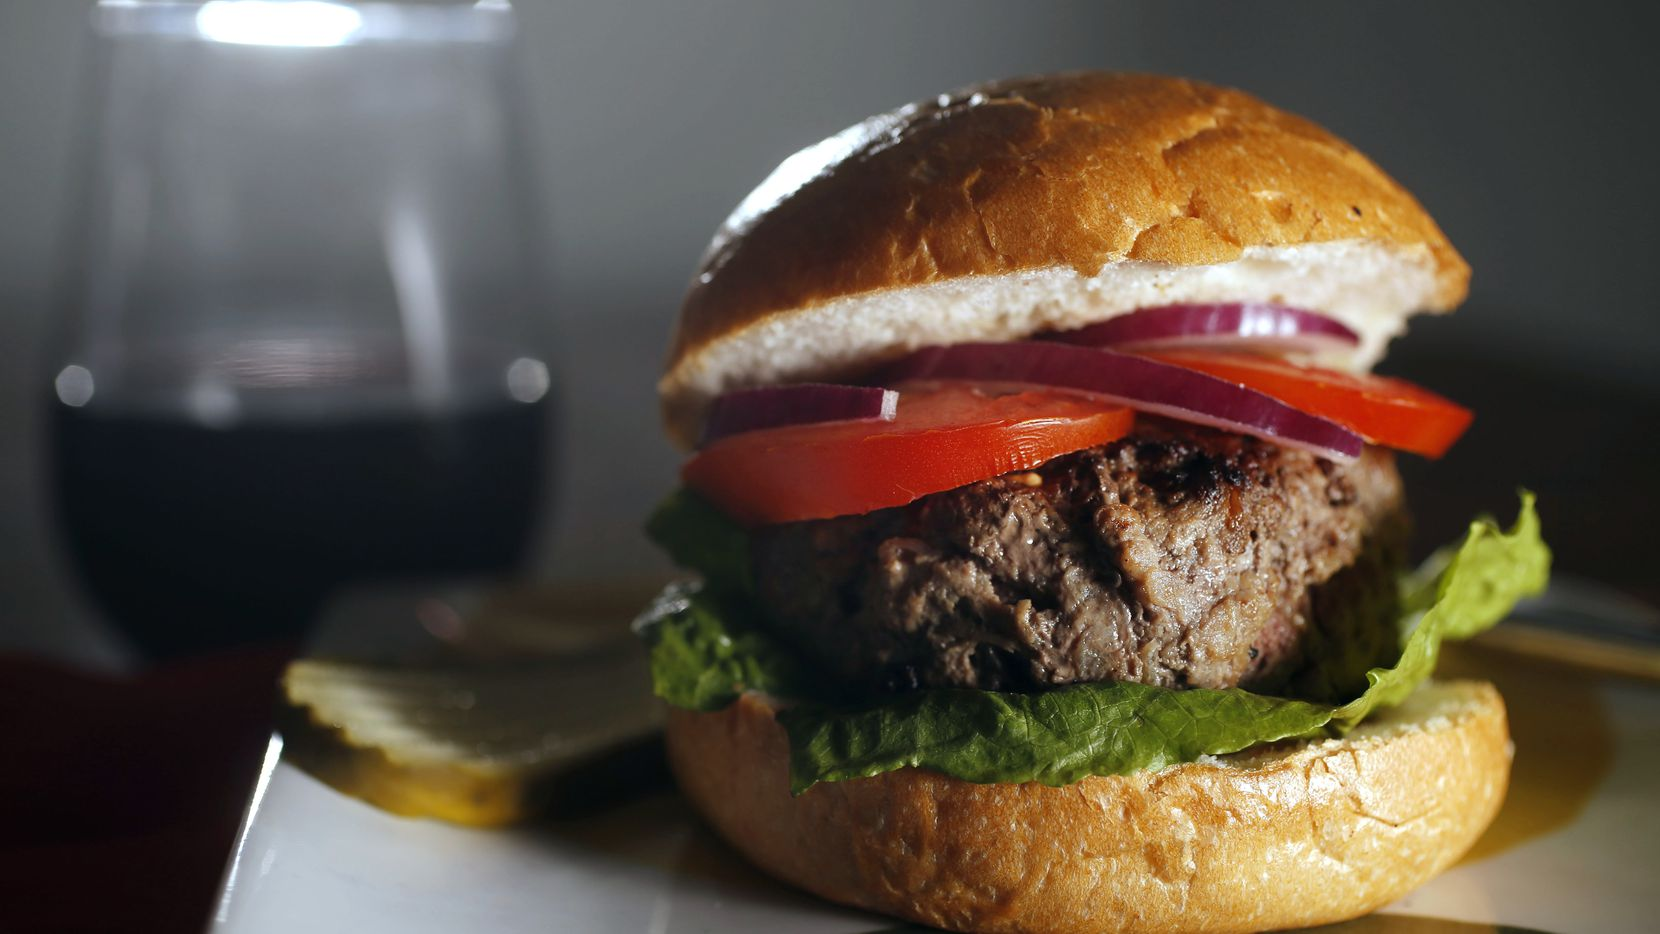 A basic grass-fed beef burger